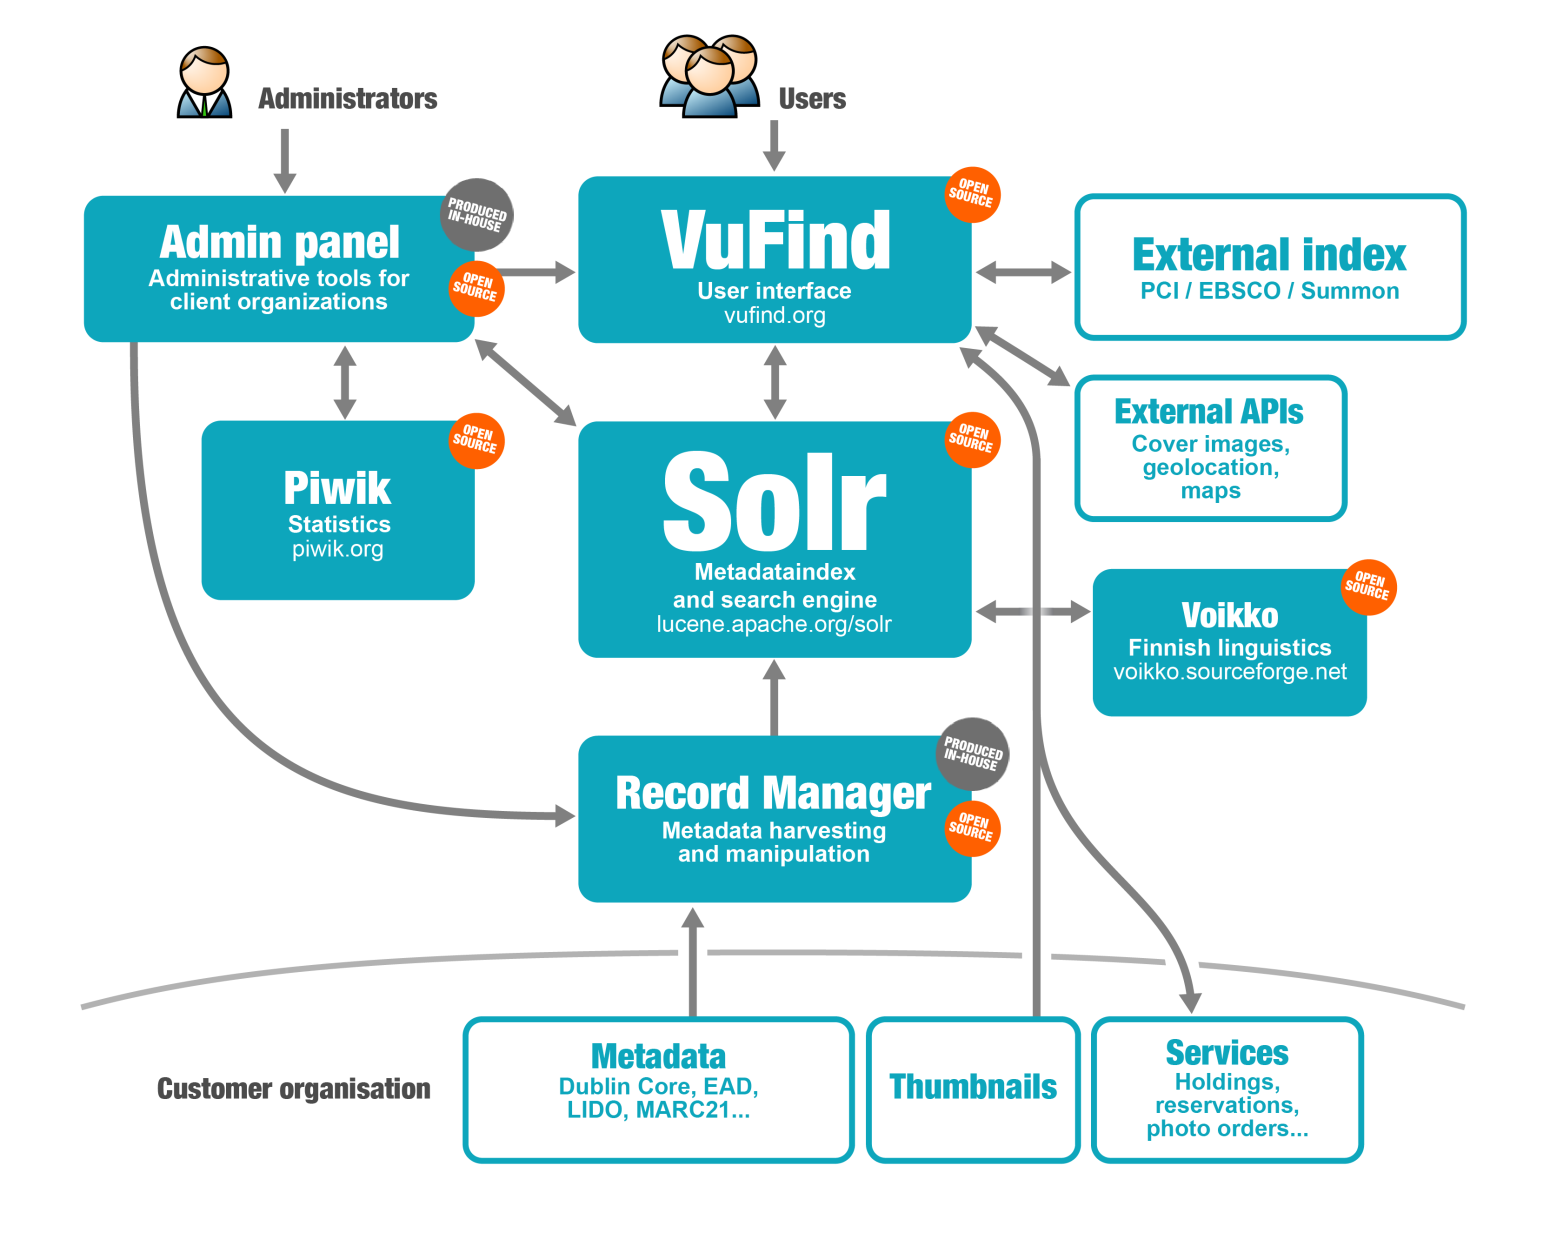 VuFind s role as the user interface is central.